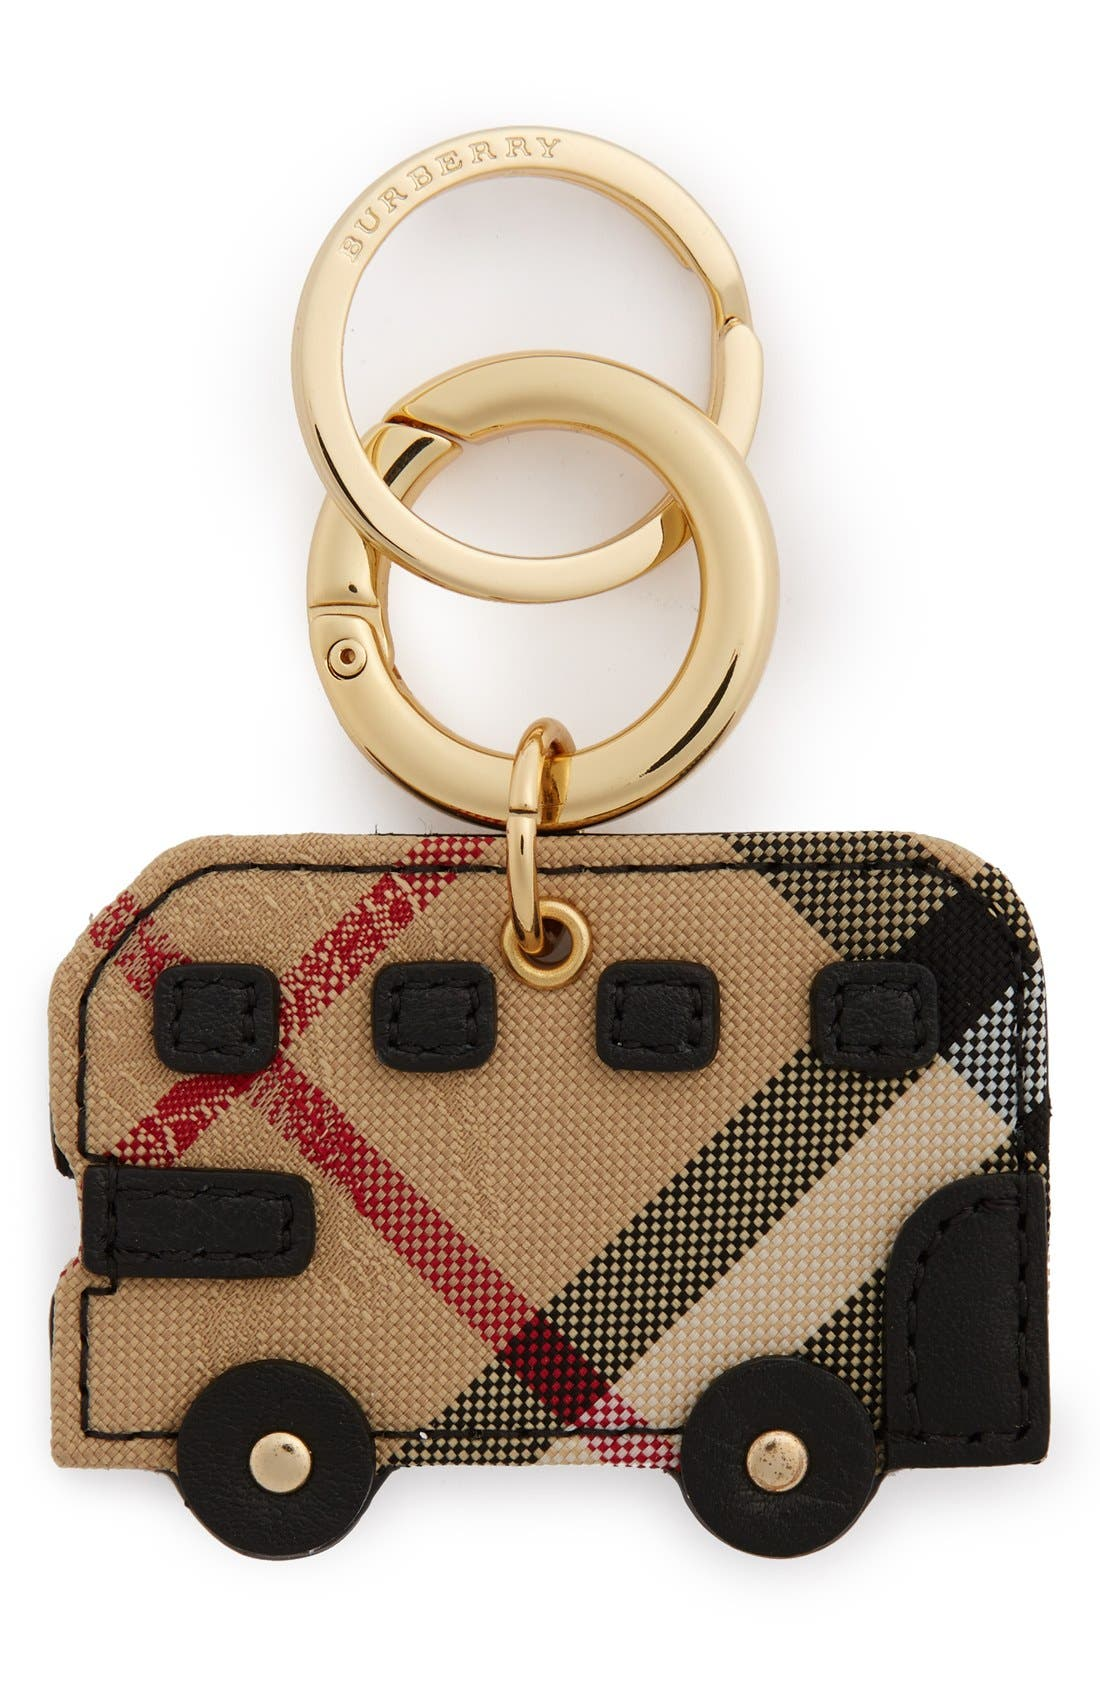 Alternate Image 1 Selected - Burberry 'Horseferry Check' London Bus Bag Charm